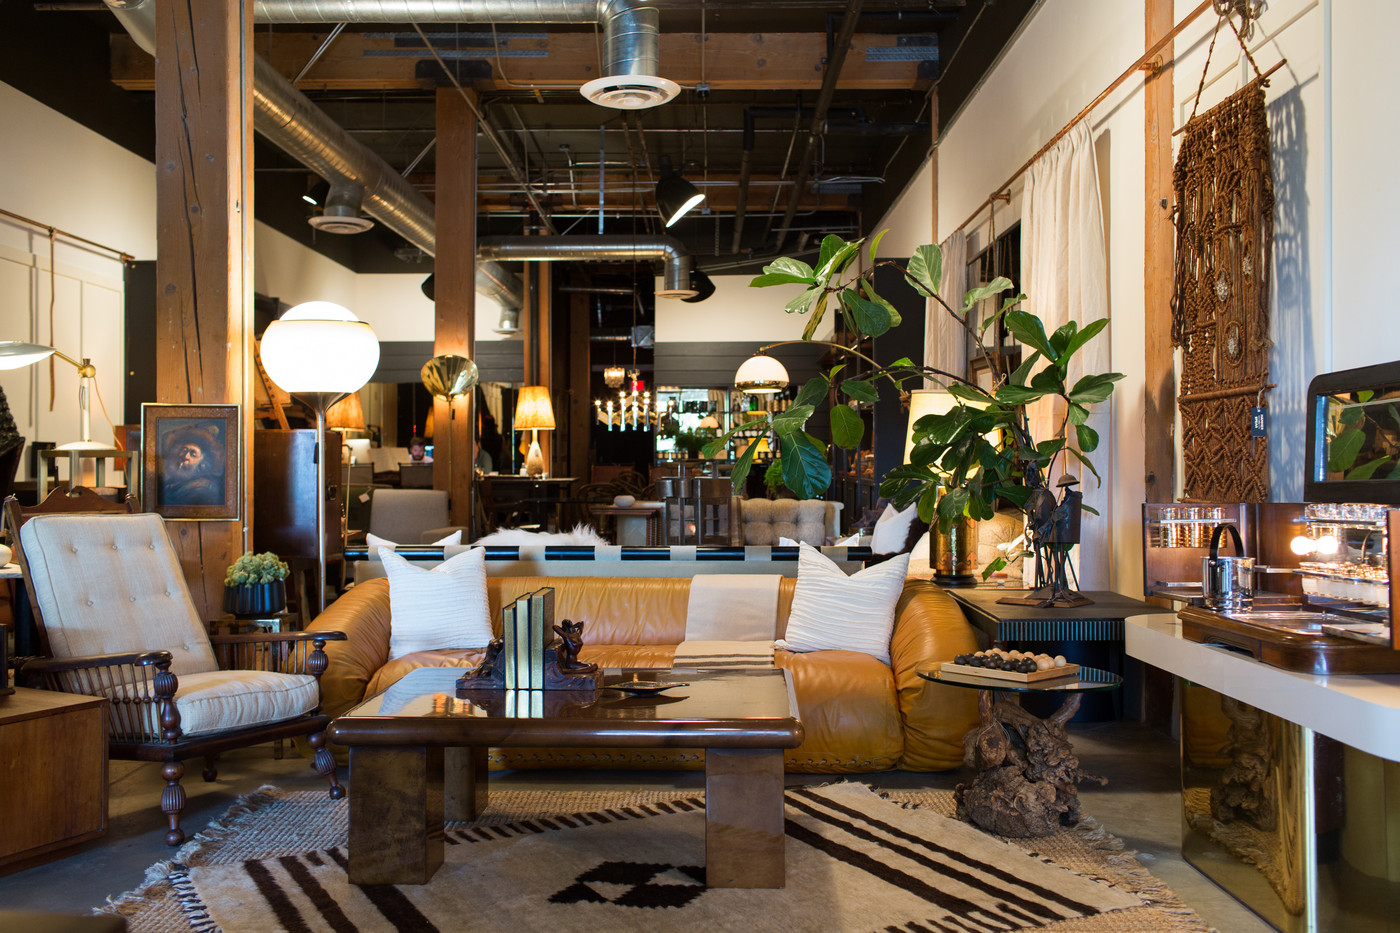 Western Stil Wohnzimmer Industrial Style Photos Design Ideas Remodel And Decor